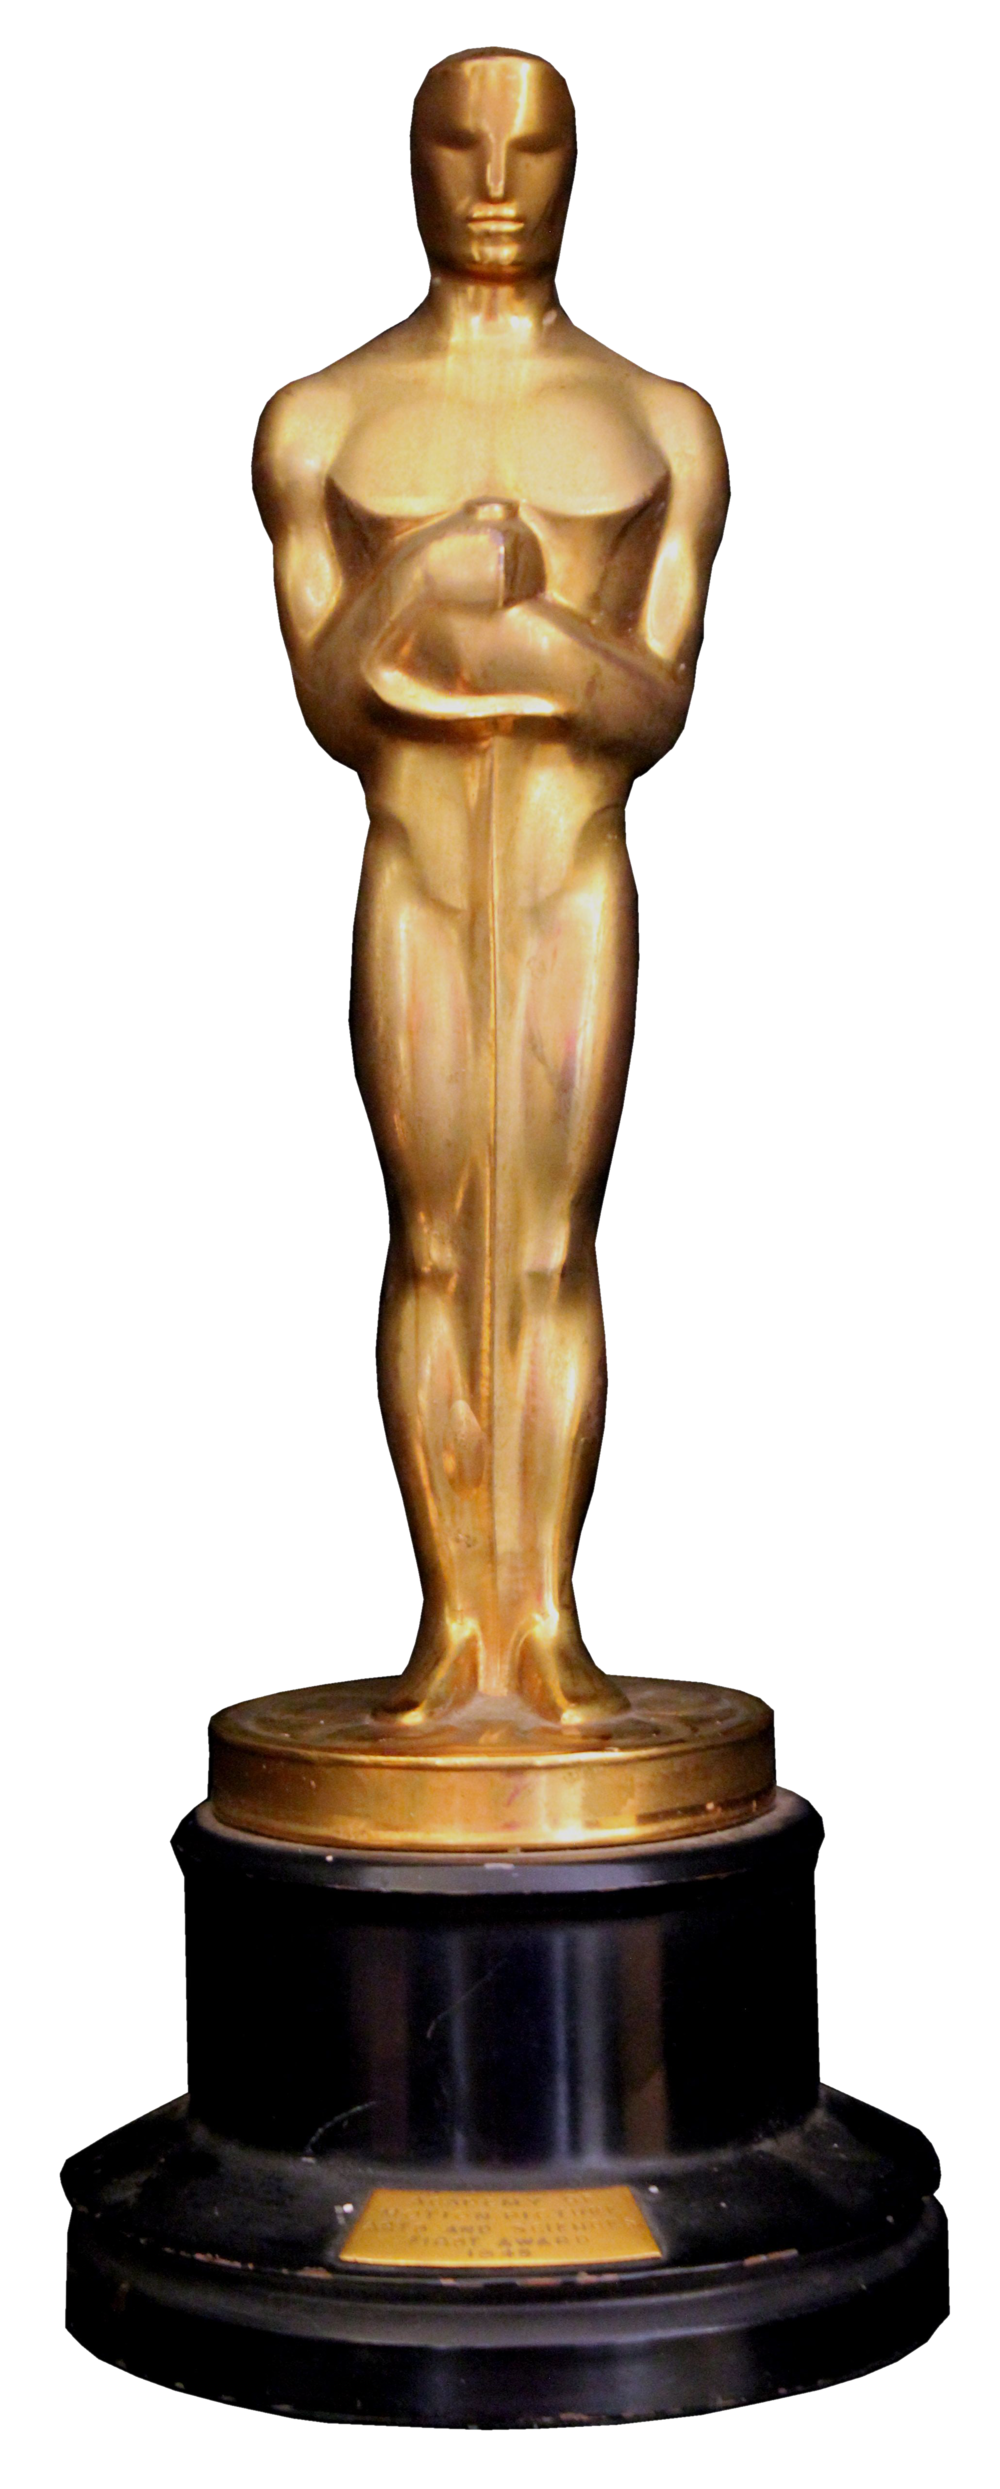 png Race to the oscars. Oscar transparent